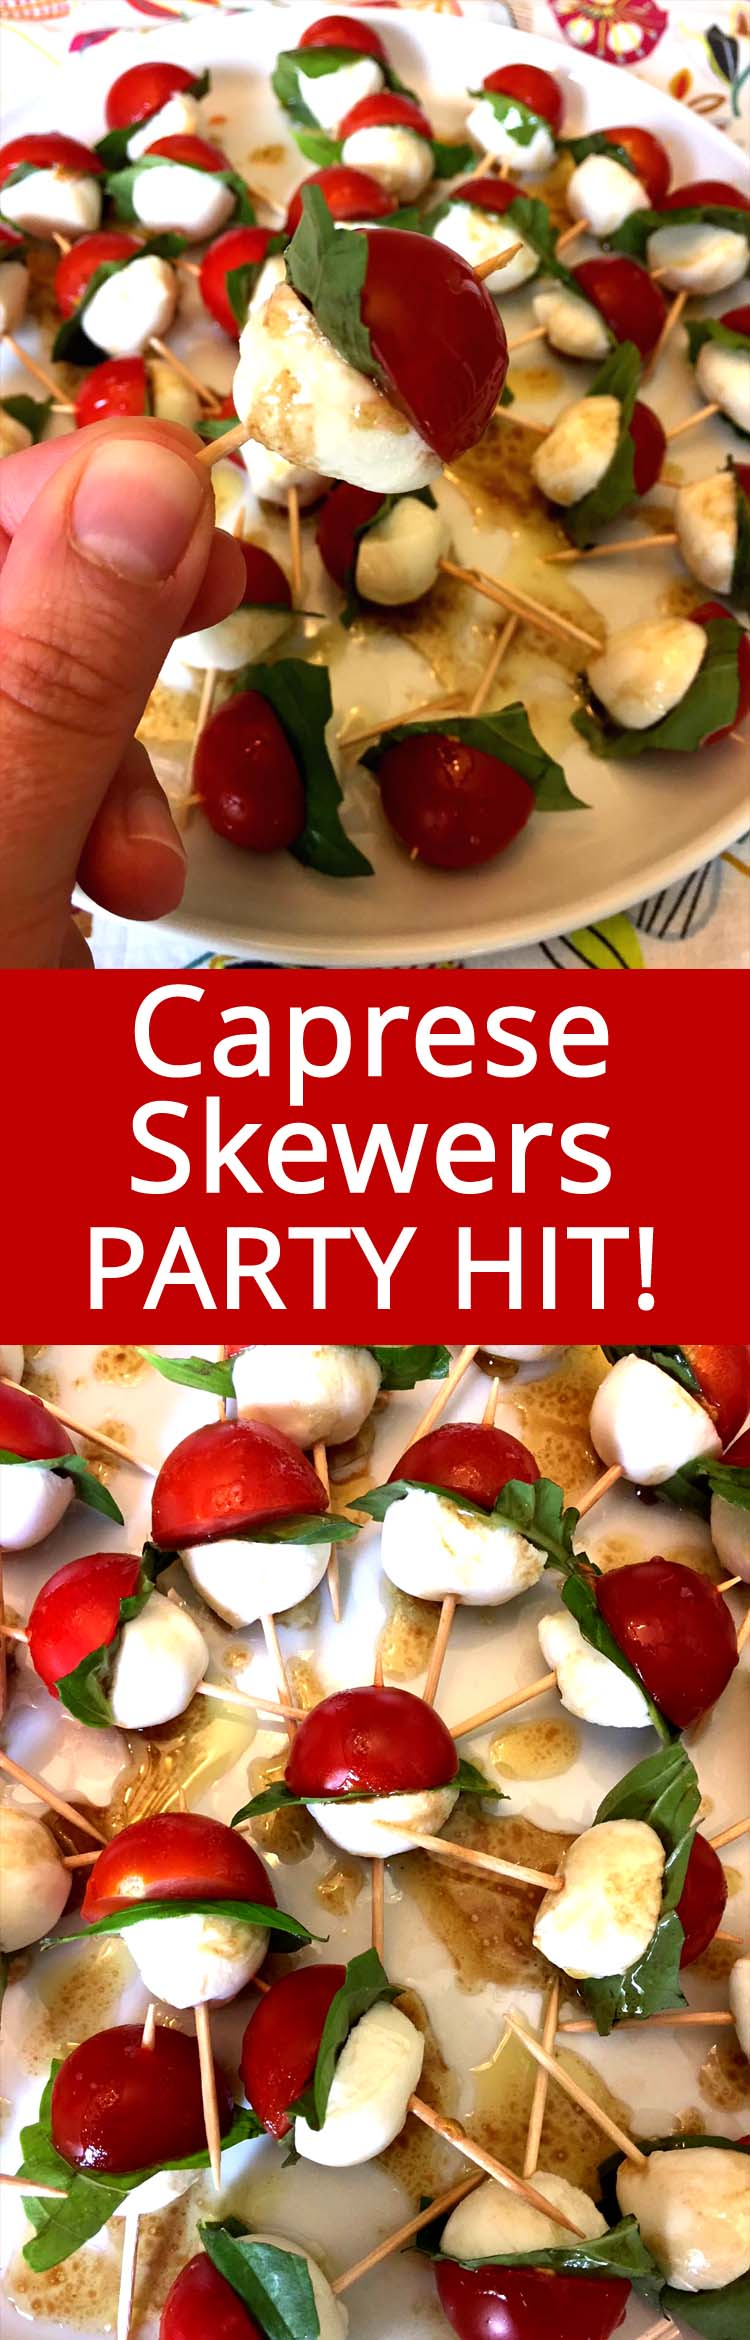 These caprese salad skewers are my go-to appetizer to bring to a potluck! They are healthy, cute and so delicious! Everyone loves these tomato mozzarella bites!